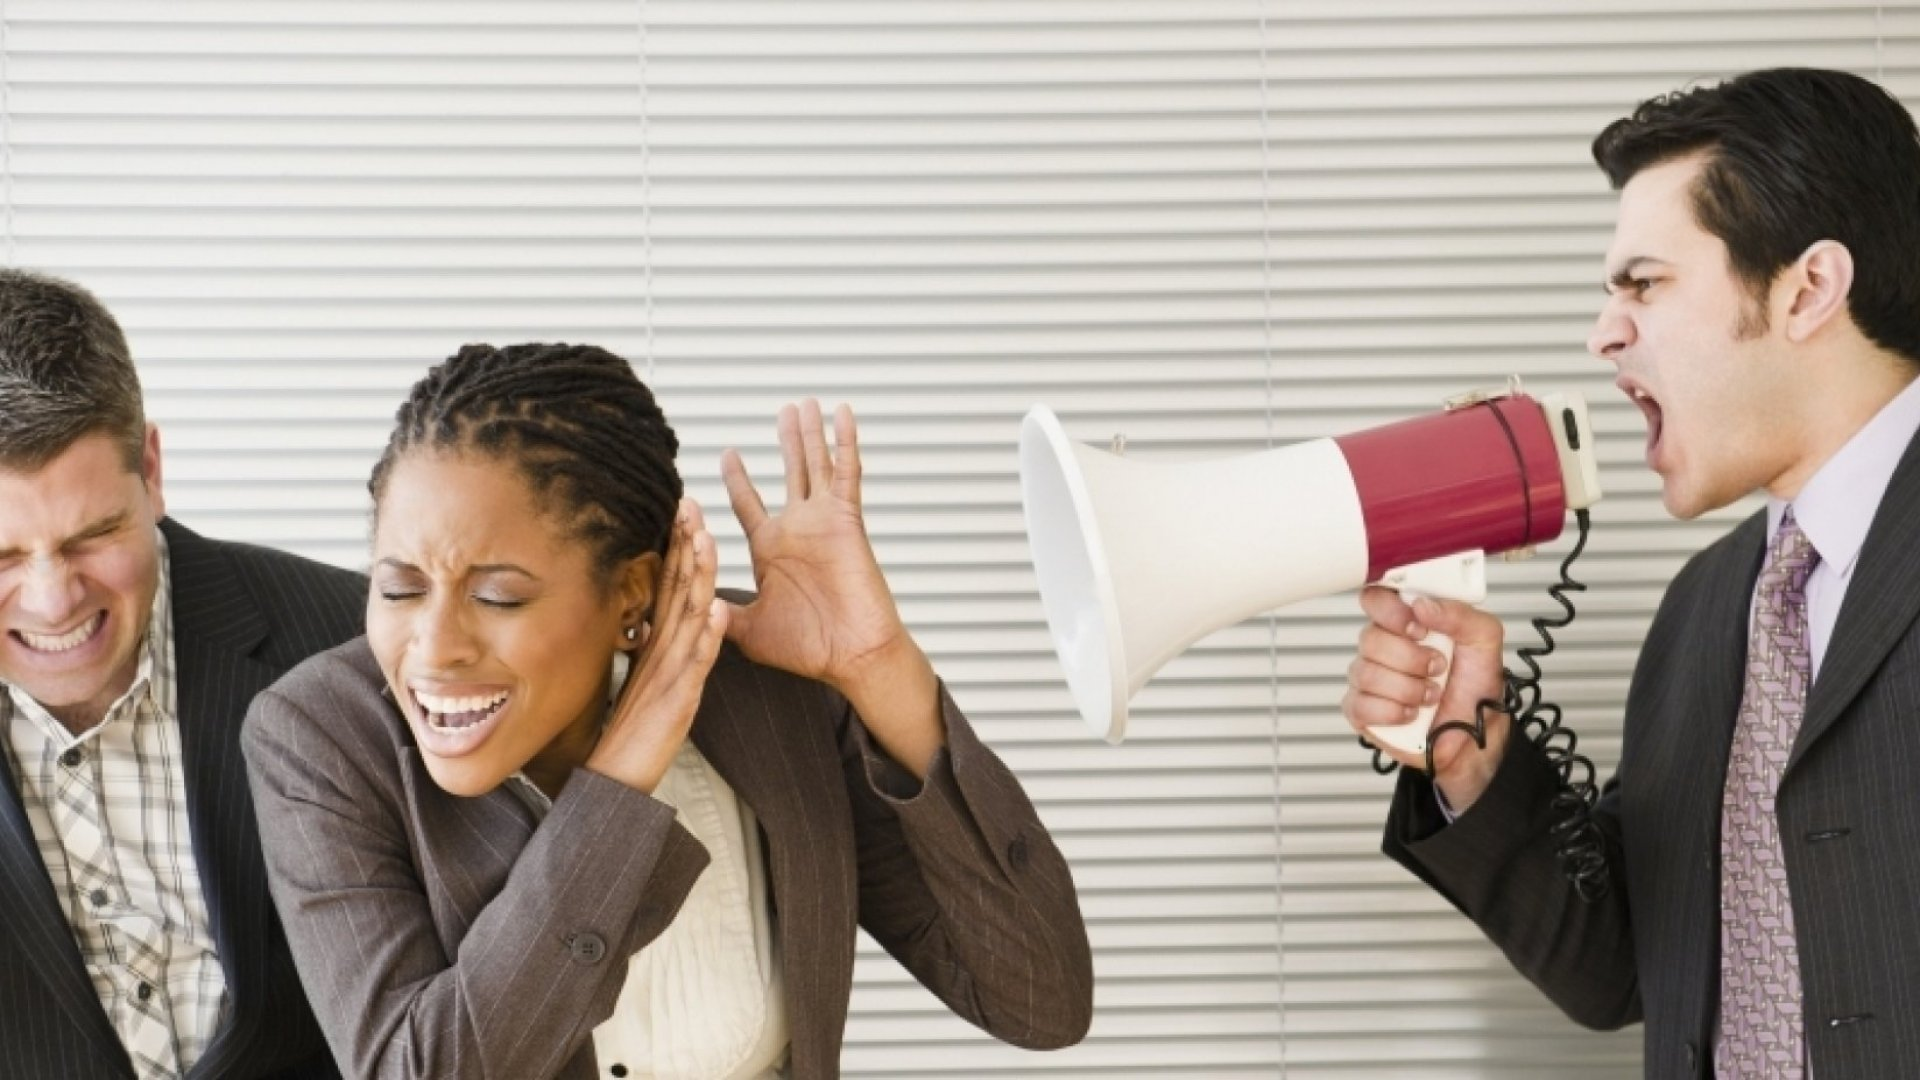 42 Sure-Fire Ways to Demoralize a Sales Team